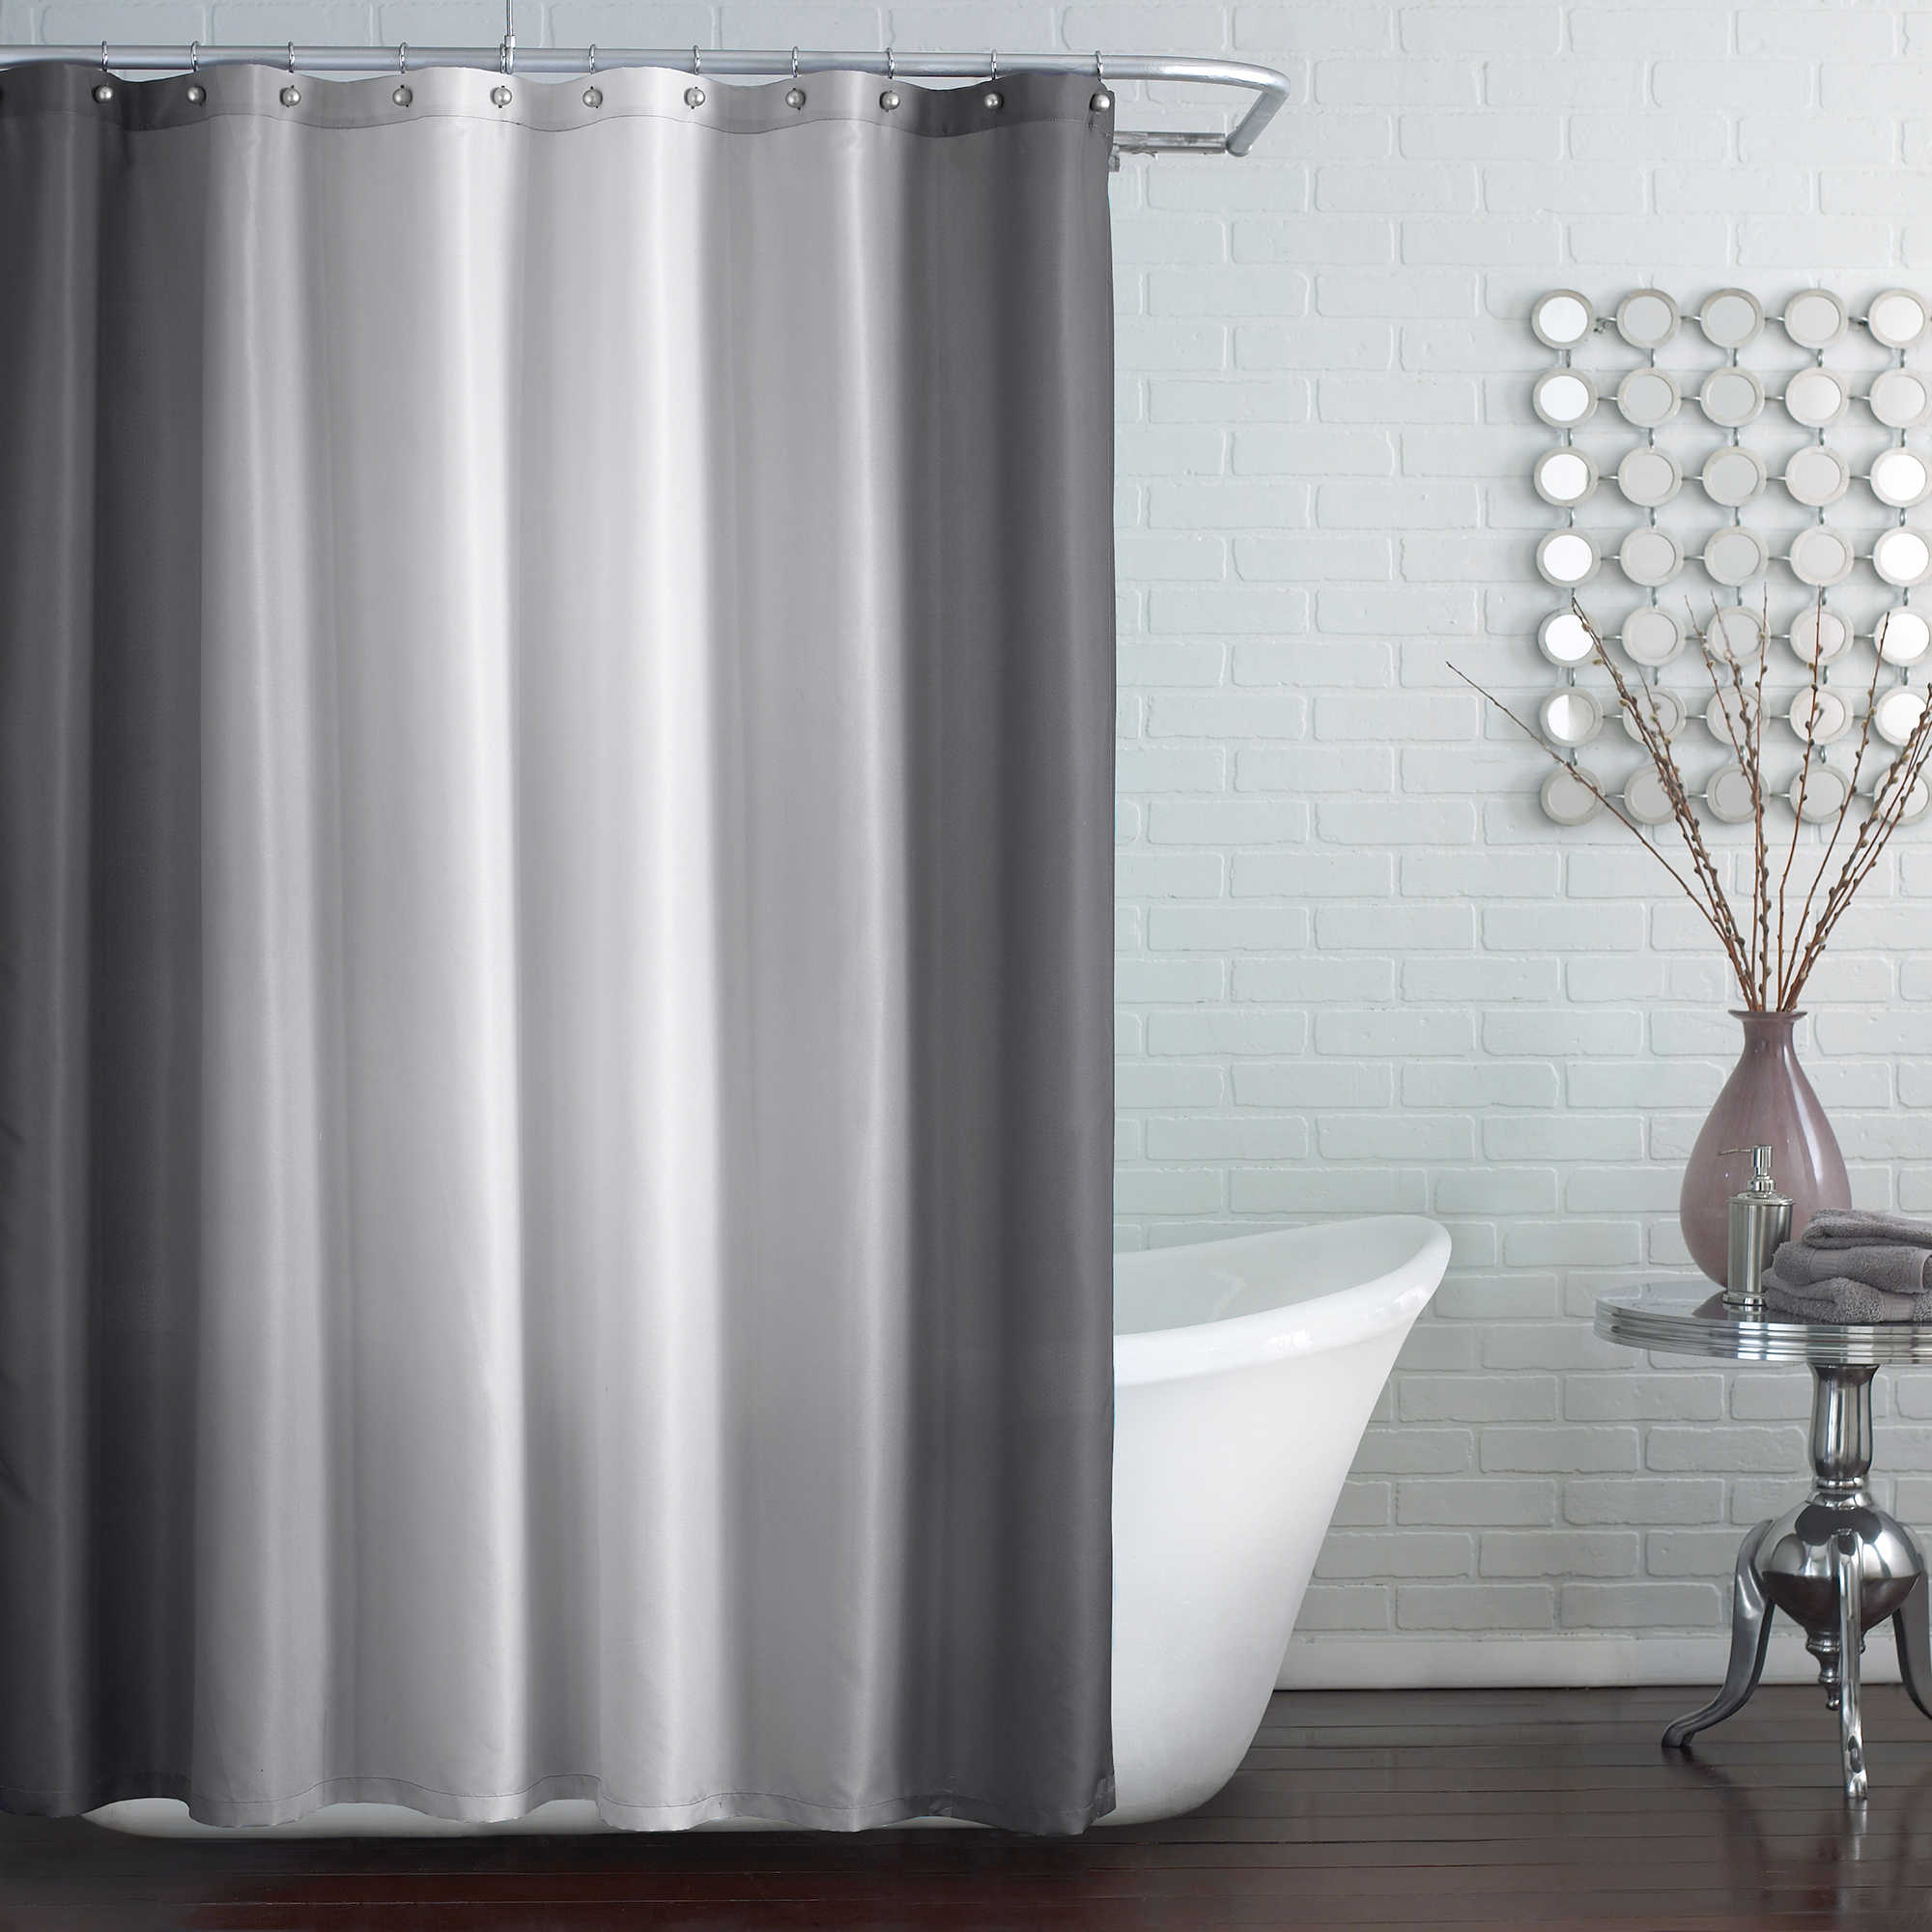 Extra Long Shower Curtain Rings • Shower Curtains Ideas